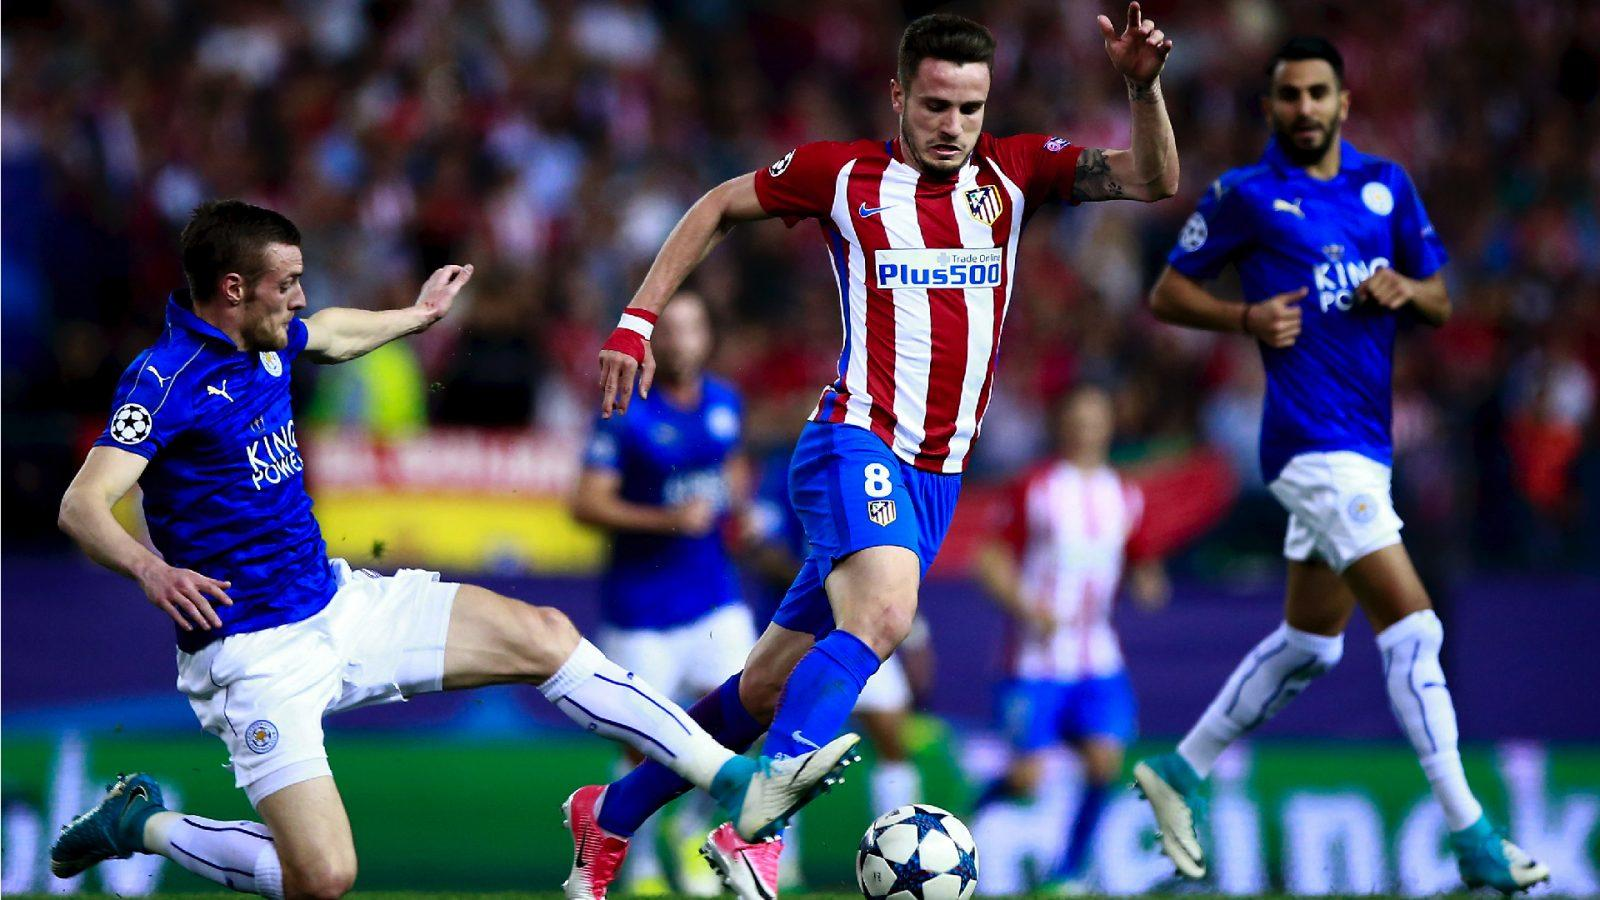 Atletico Madryt vs Leicester